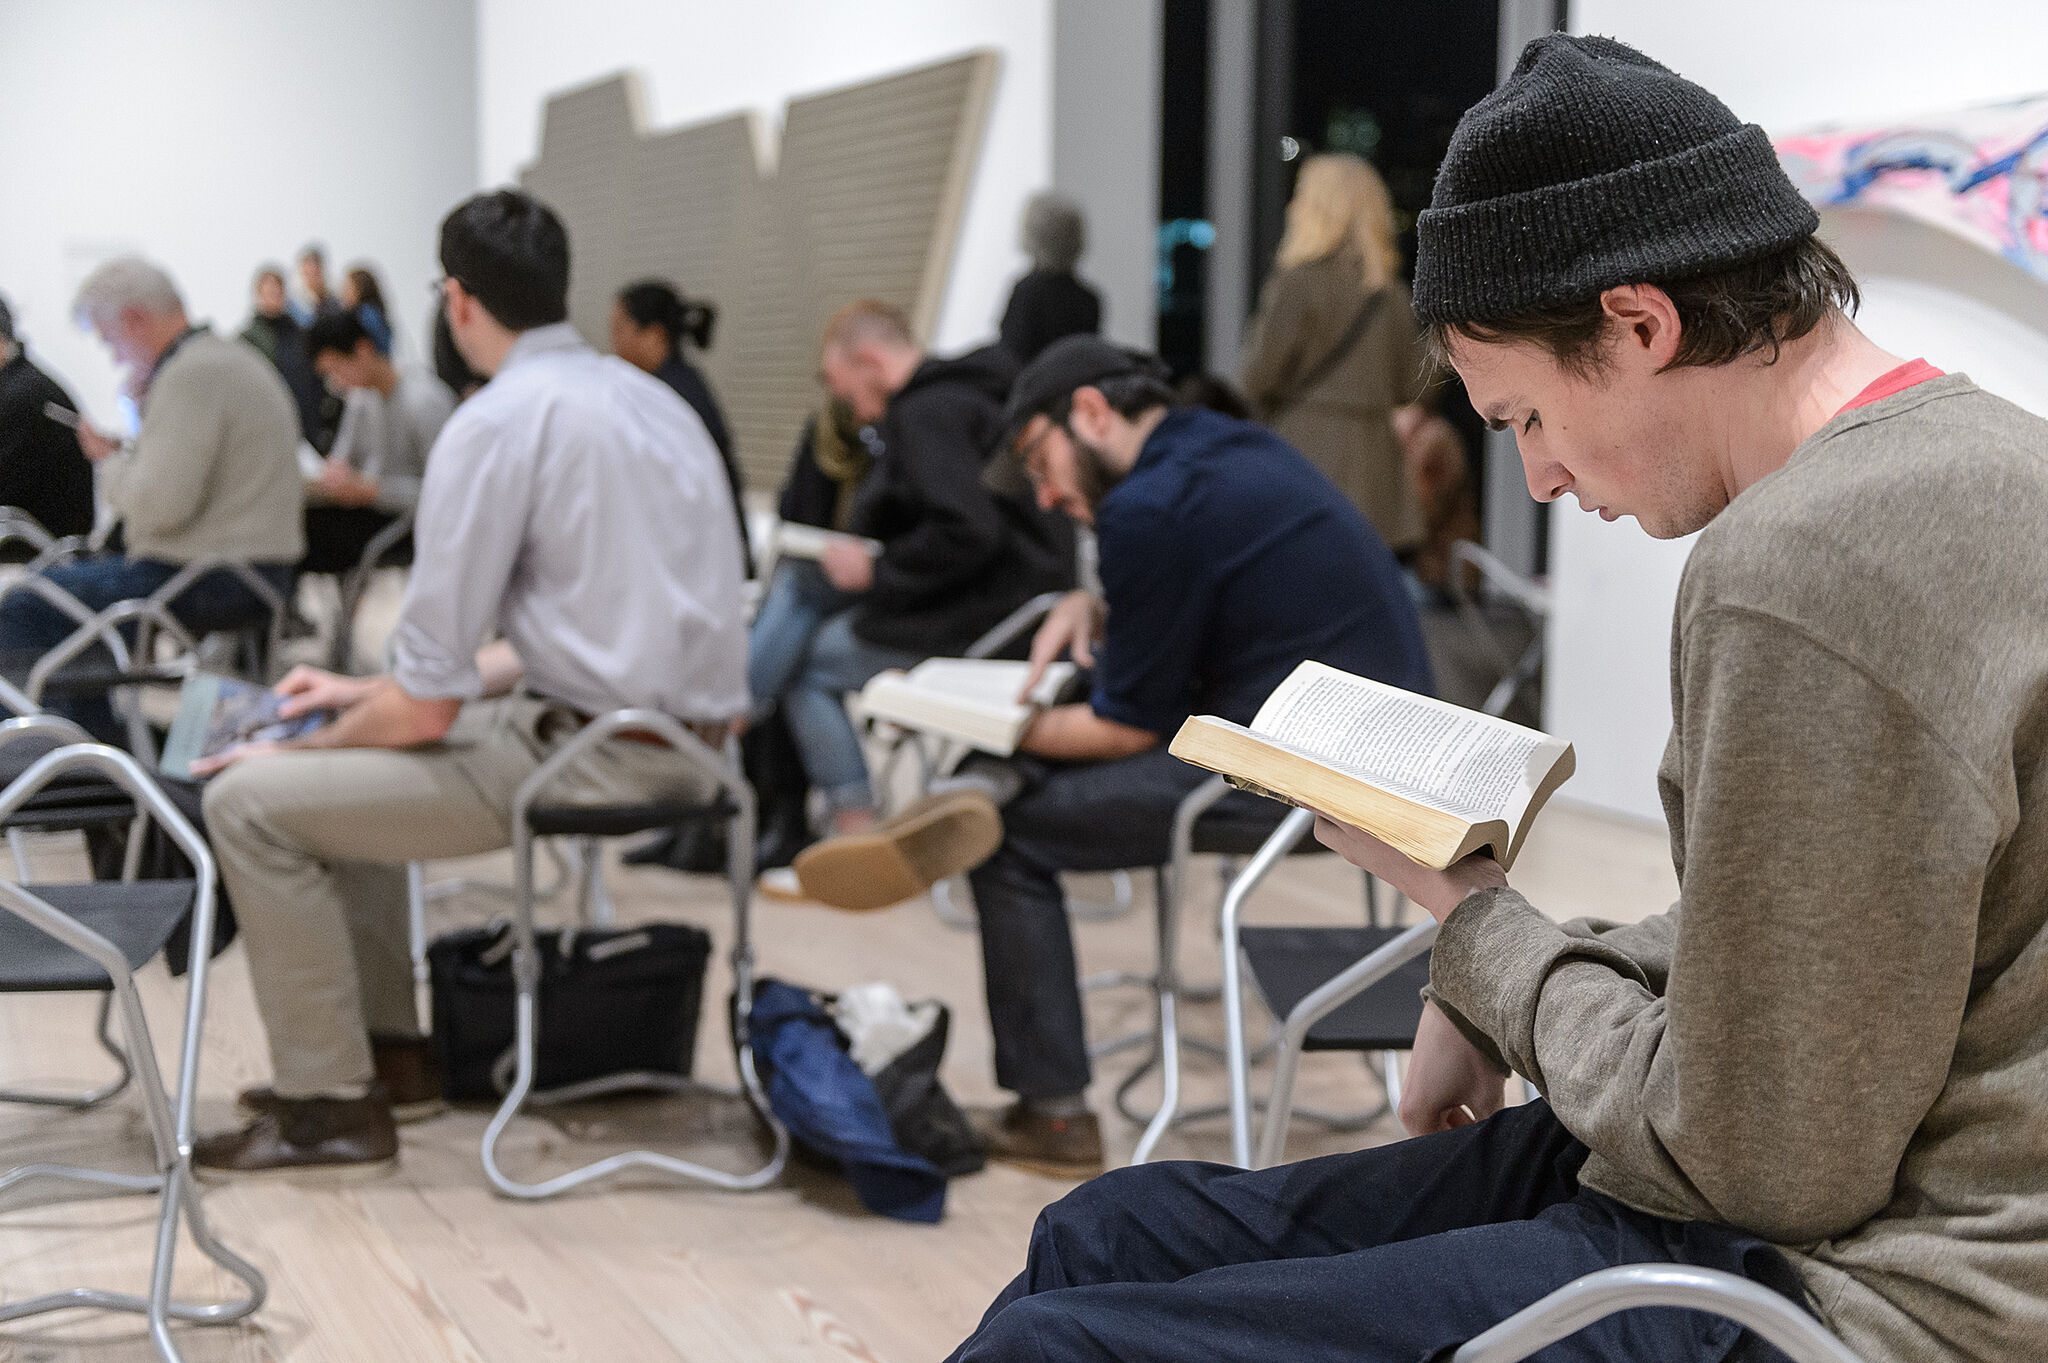 Men reading in an audience.